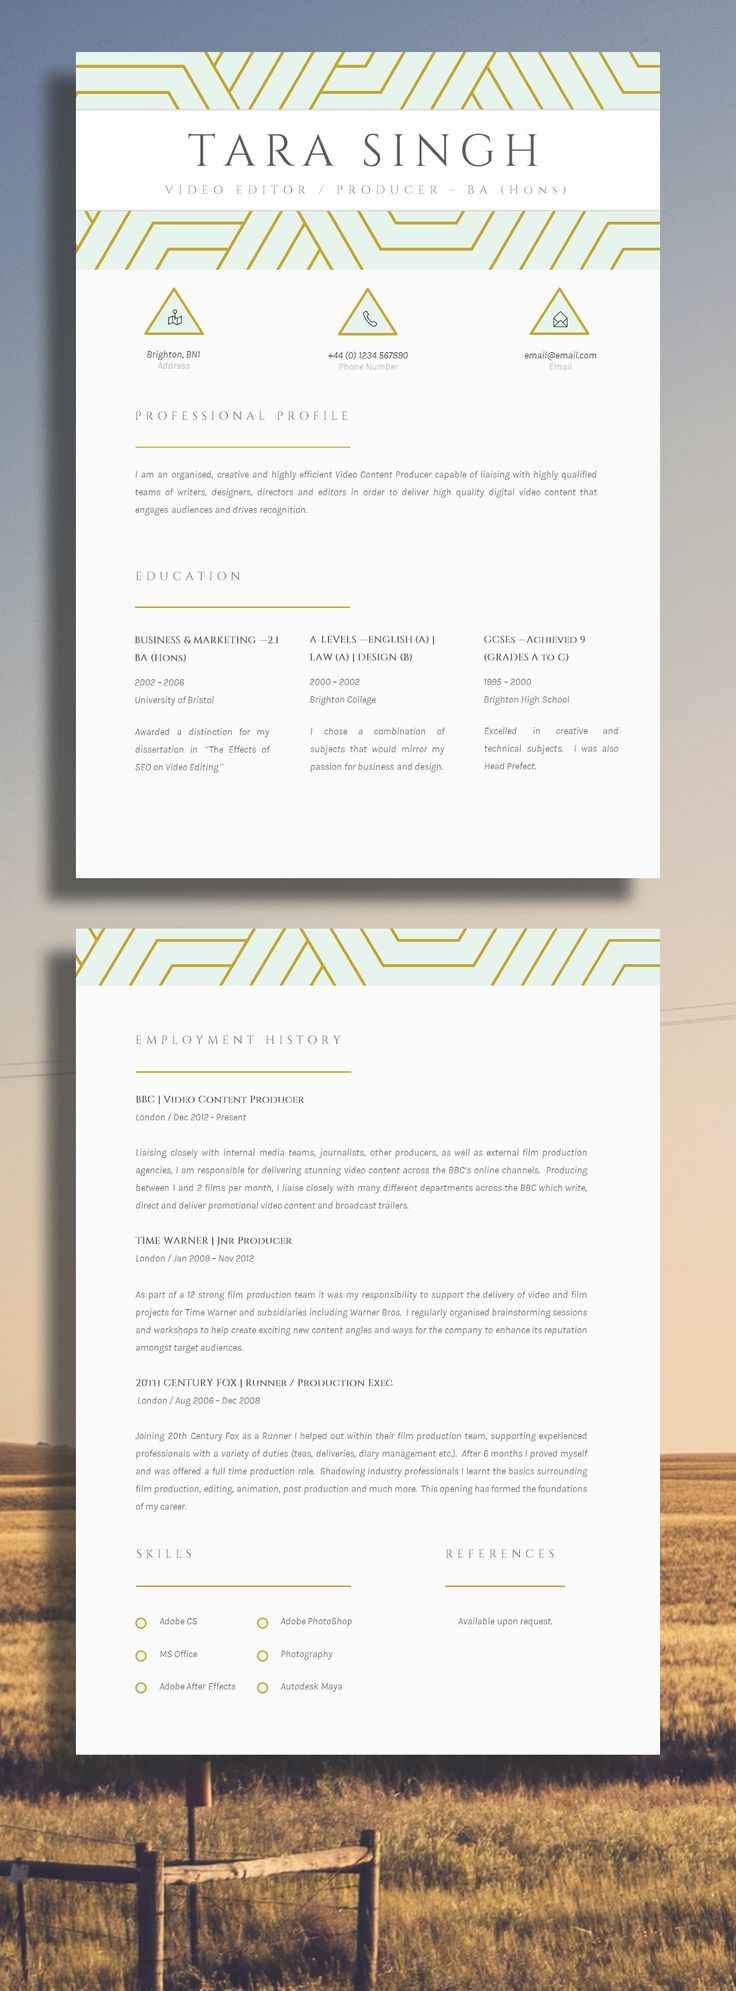 resume elegant resume design creative cv design cover letter cv guide references for ms word download word resume berkeley